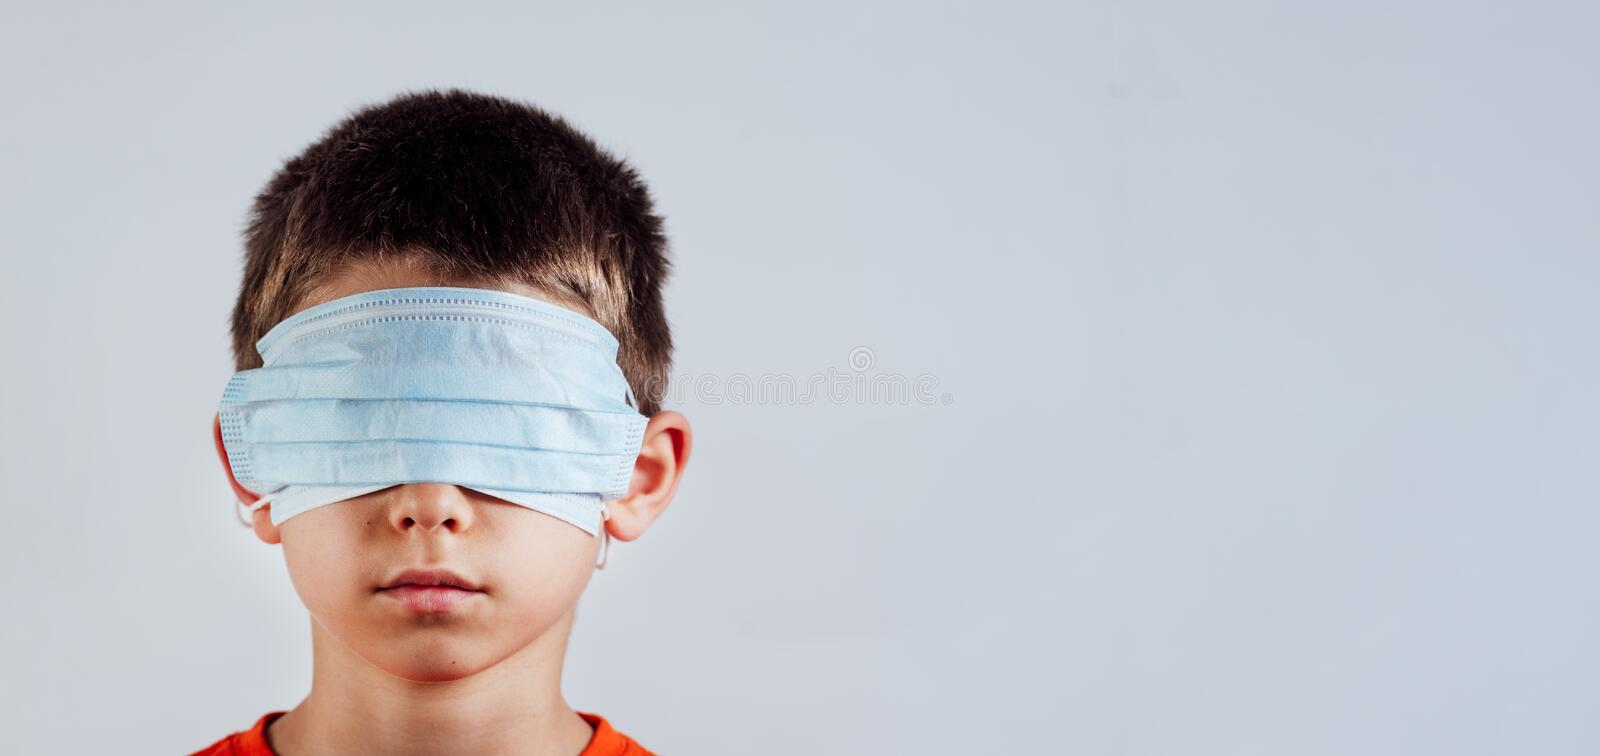 Isolated Blindfolded Child With Surgical Mask Over The Eyes And ...